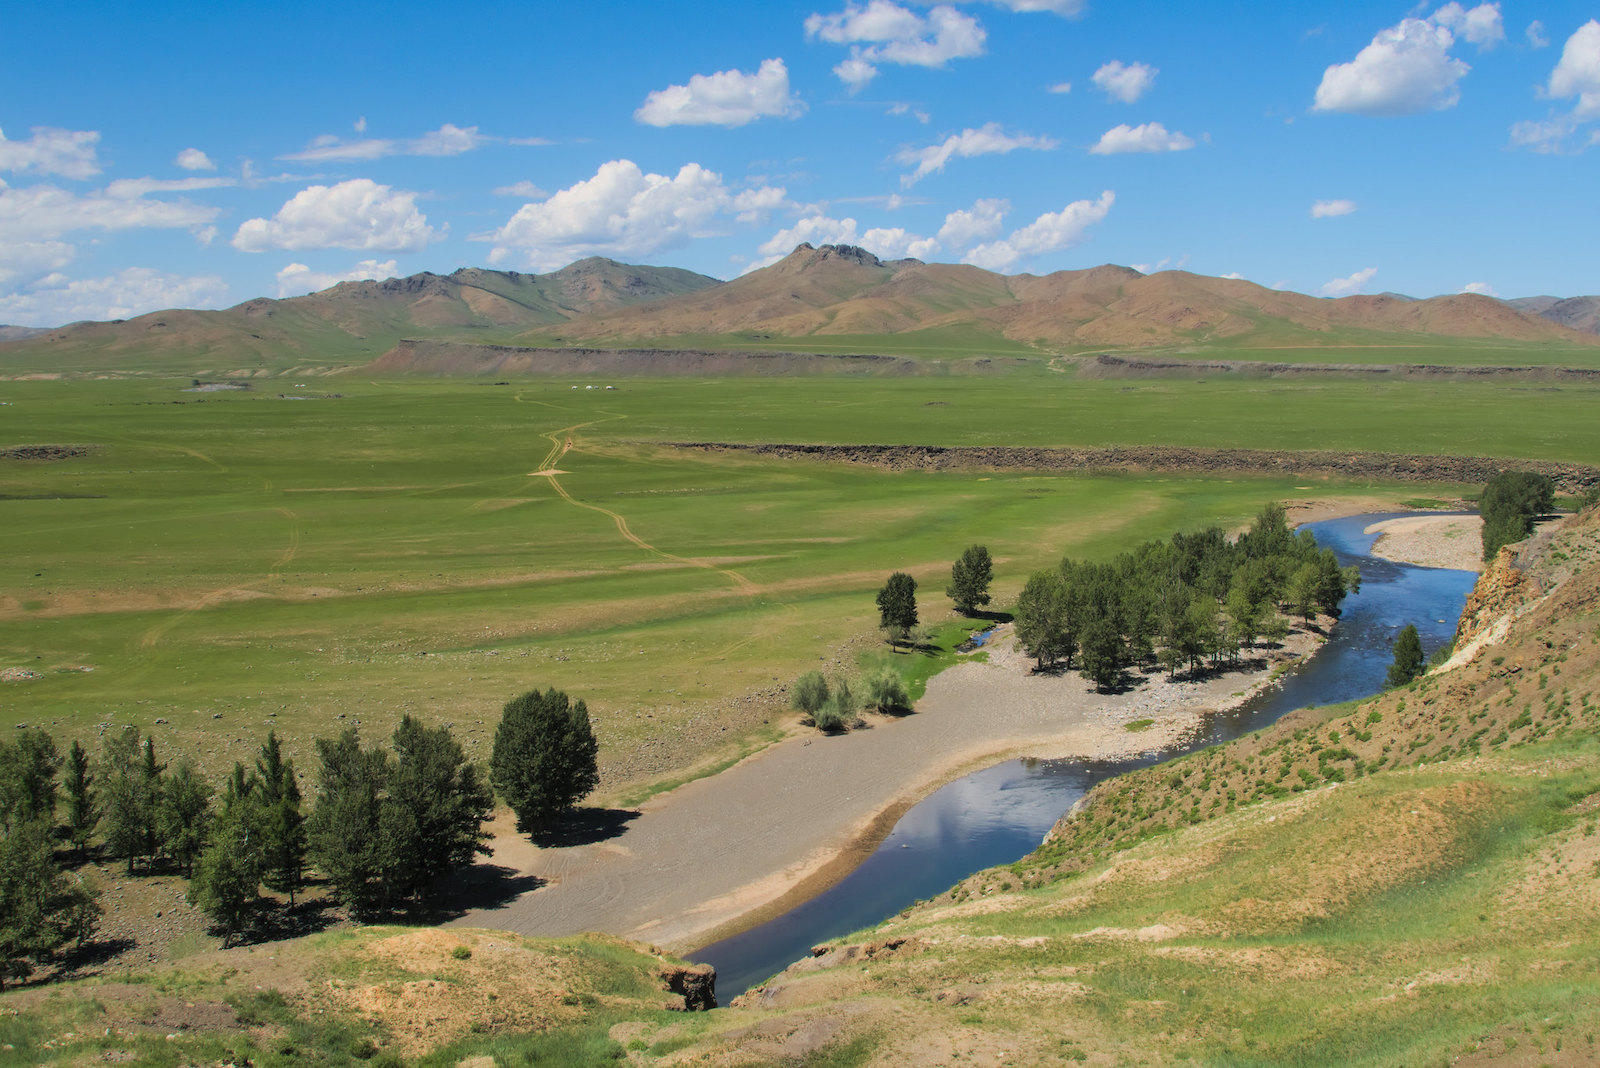 Orkhon Valley, Mongolia